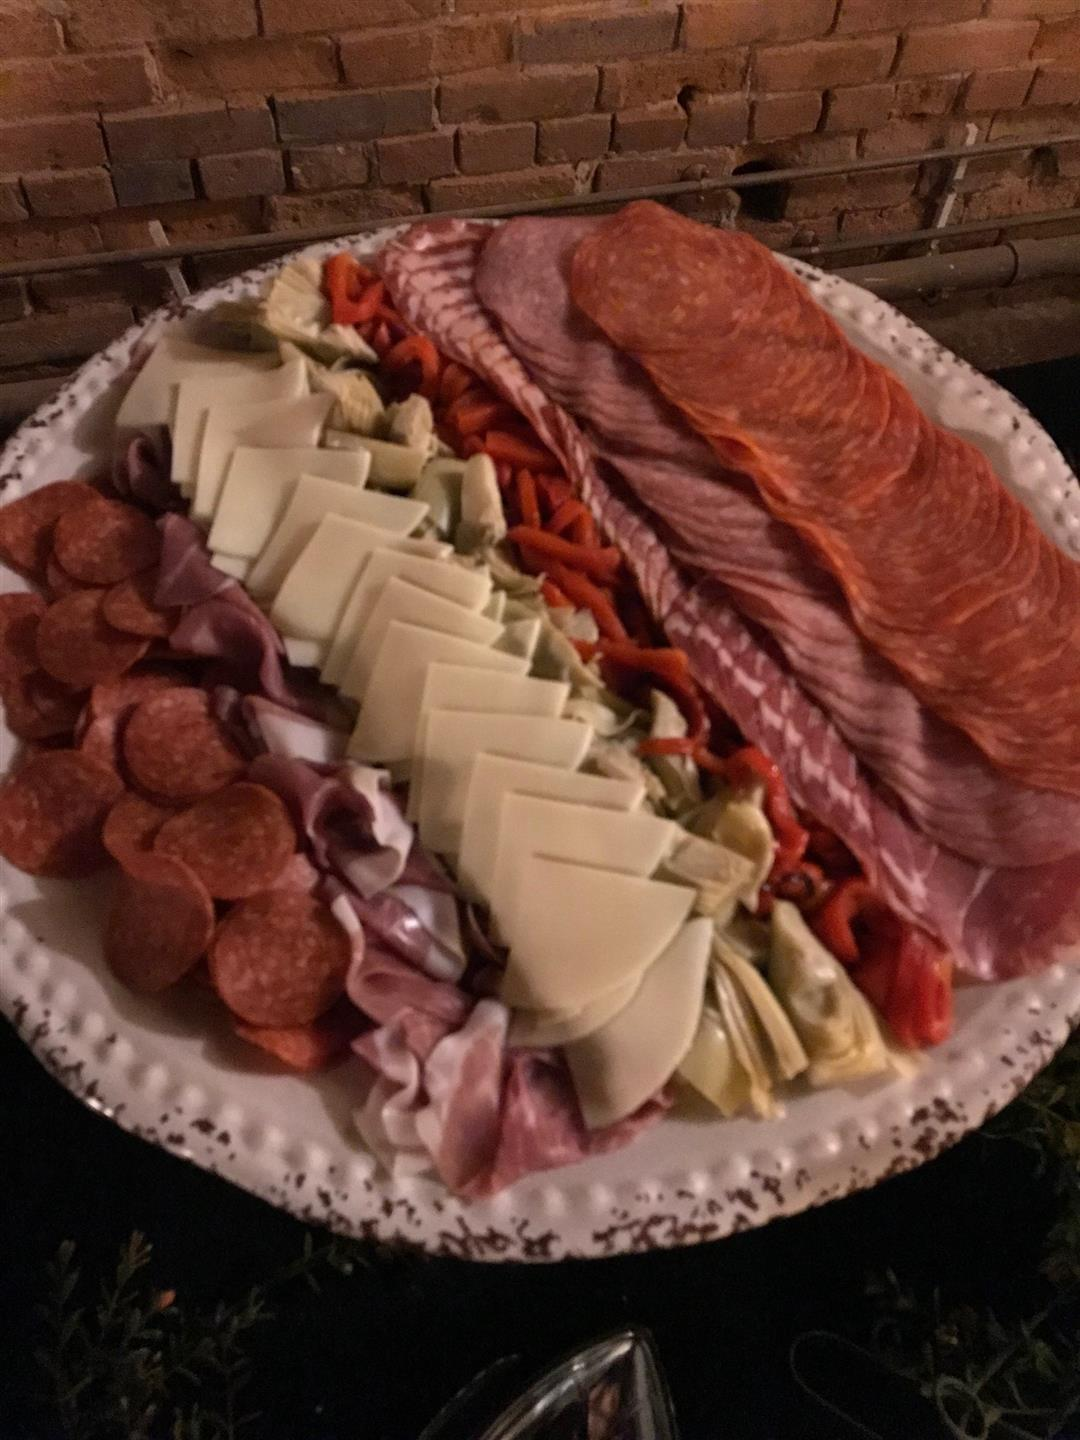 a plate with a variety of cheeses and meats